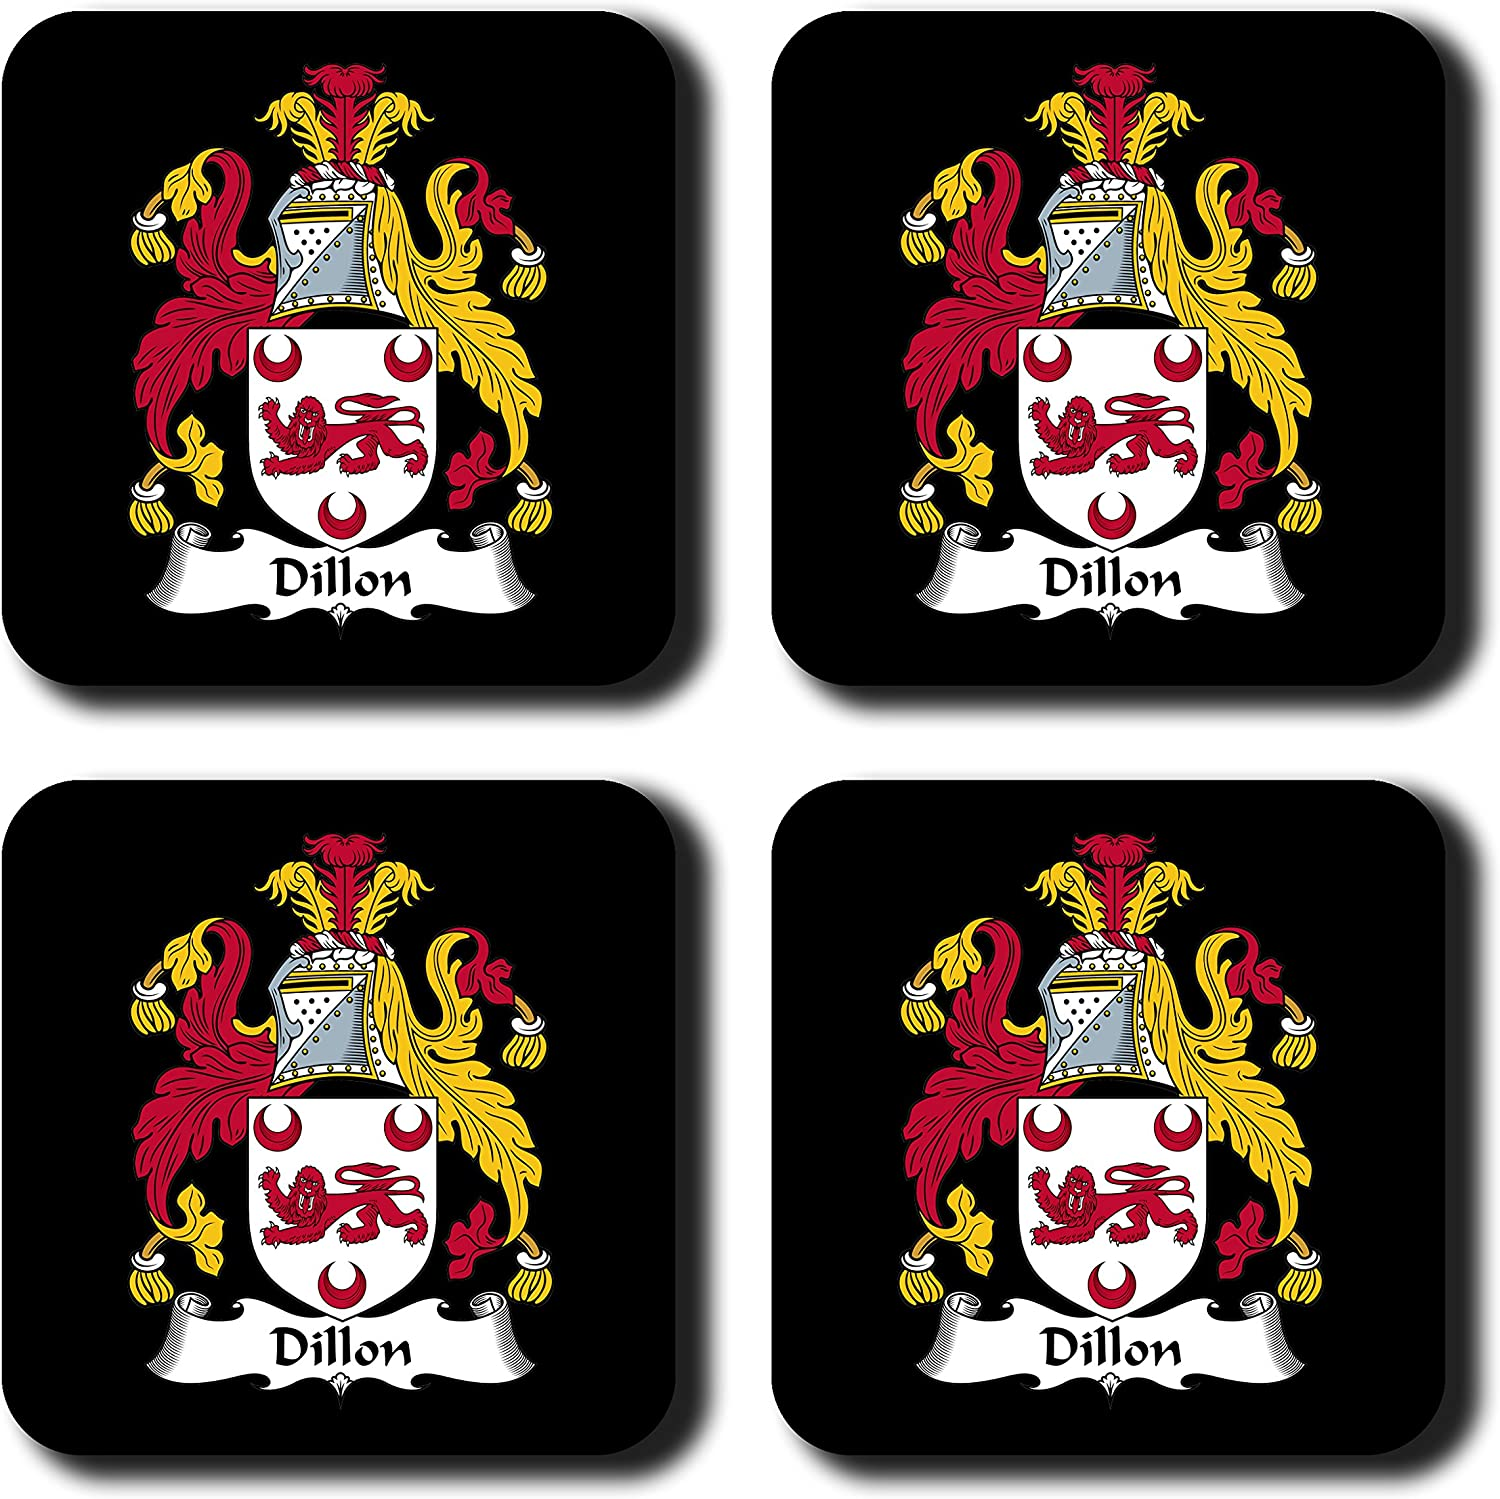 Dillon Coat of Arms/Family Crest Coaster Set, by Carpe Diem Designs – Made in the U.S.A.